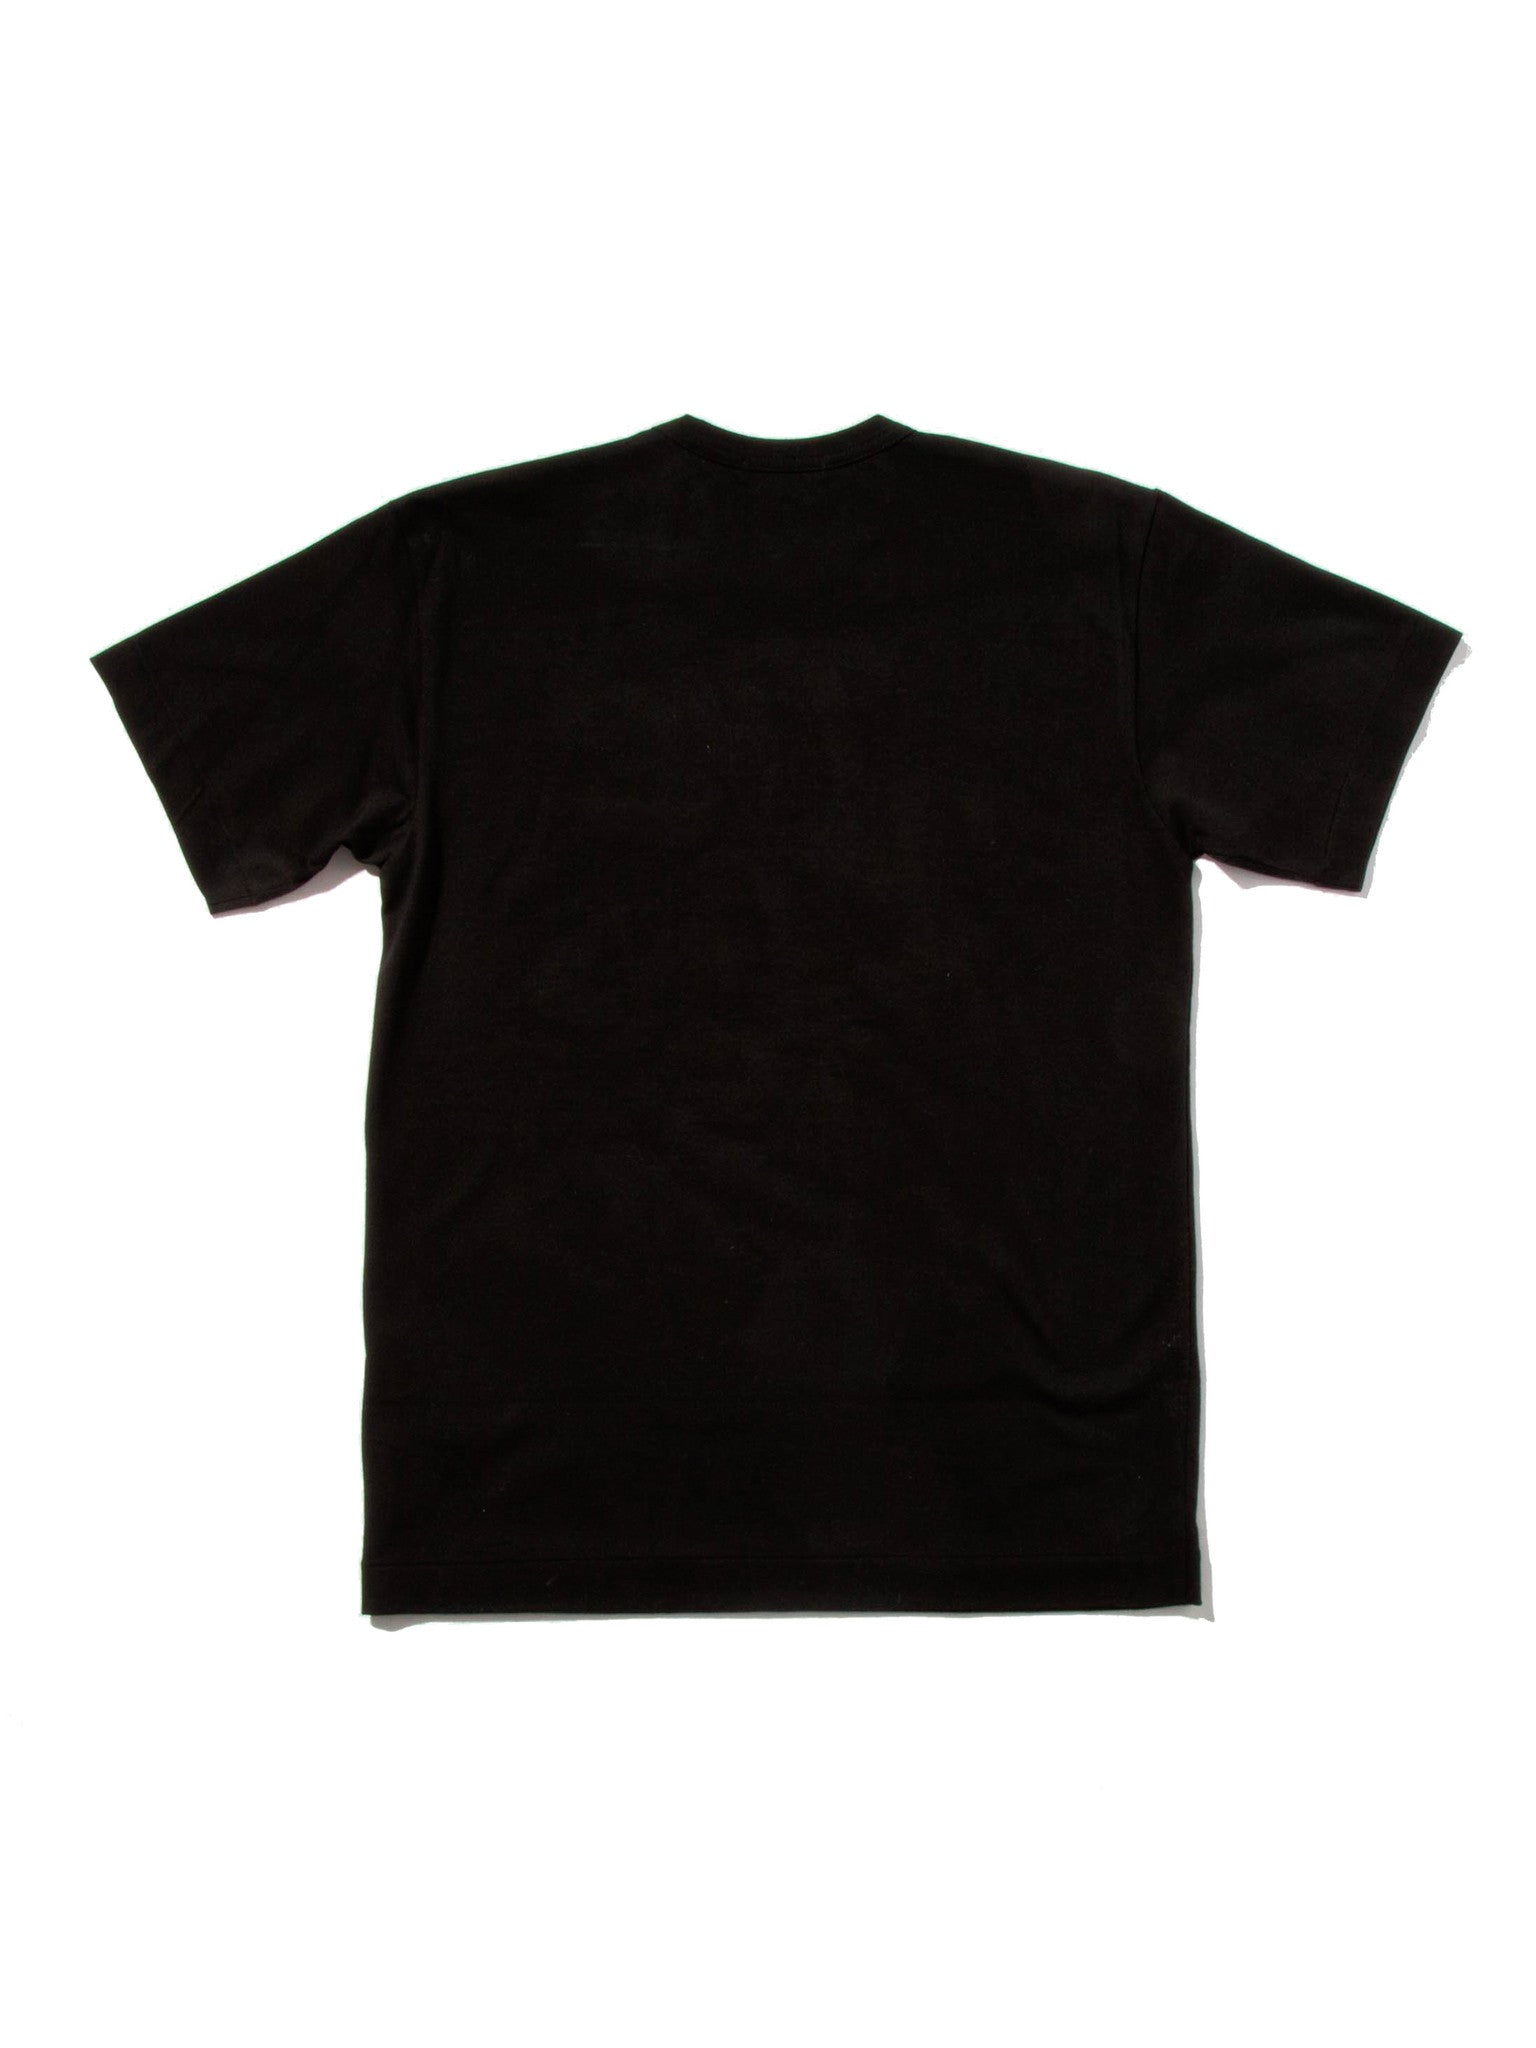 Black Printed T-Shirt 4